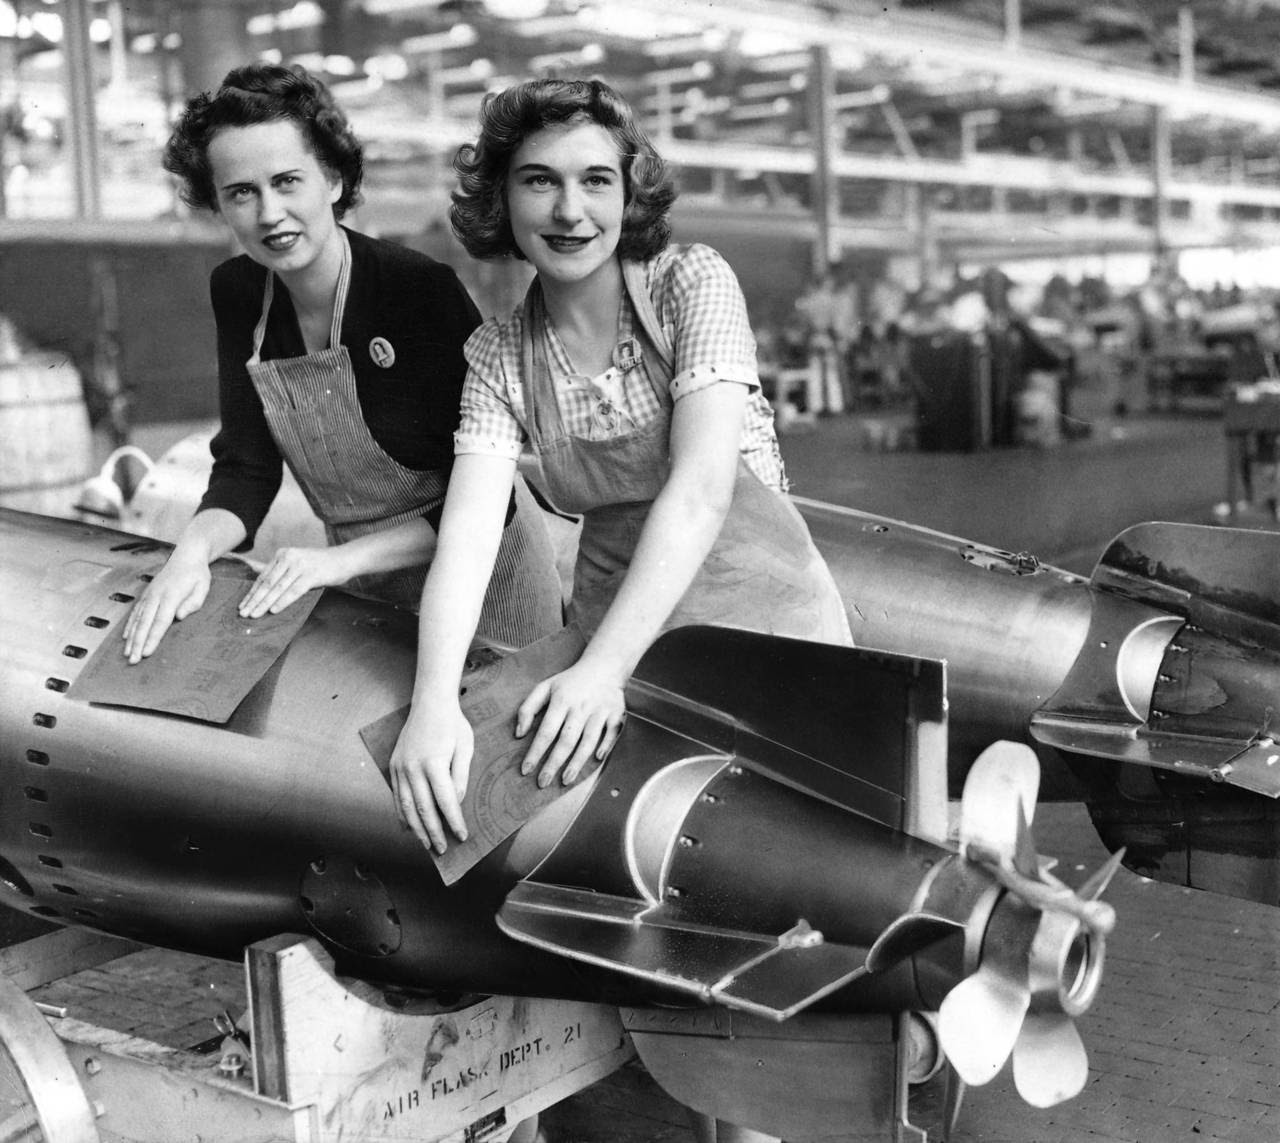 Mrs. Lenore Radway, left, and Miss Sherley Becker polish a torpedo flask in 1943 at the Amertorp Torpedo Ordnance Corporation in Forest Park, Illinois. As many as 6,500 workers churned out hundreds of torpedoes per month, a long-forgotten but crucial part of the war effort.